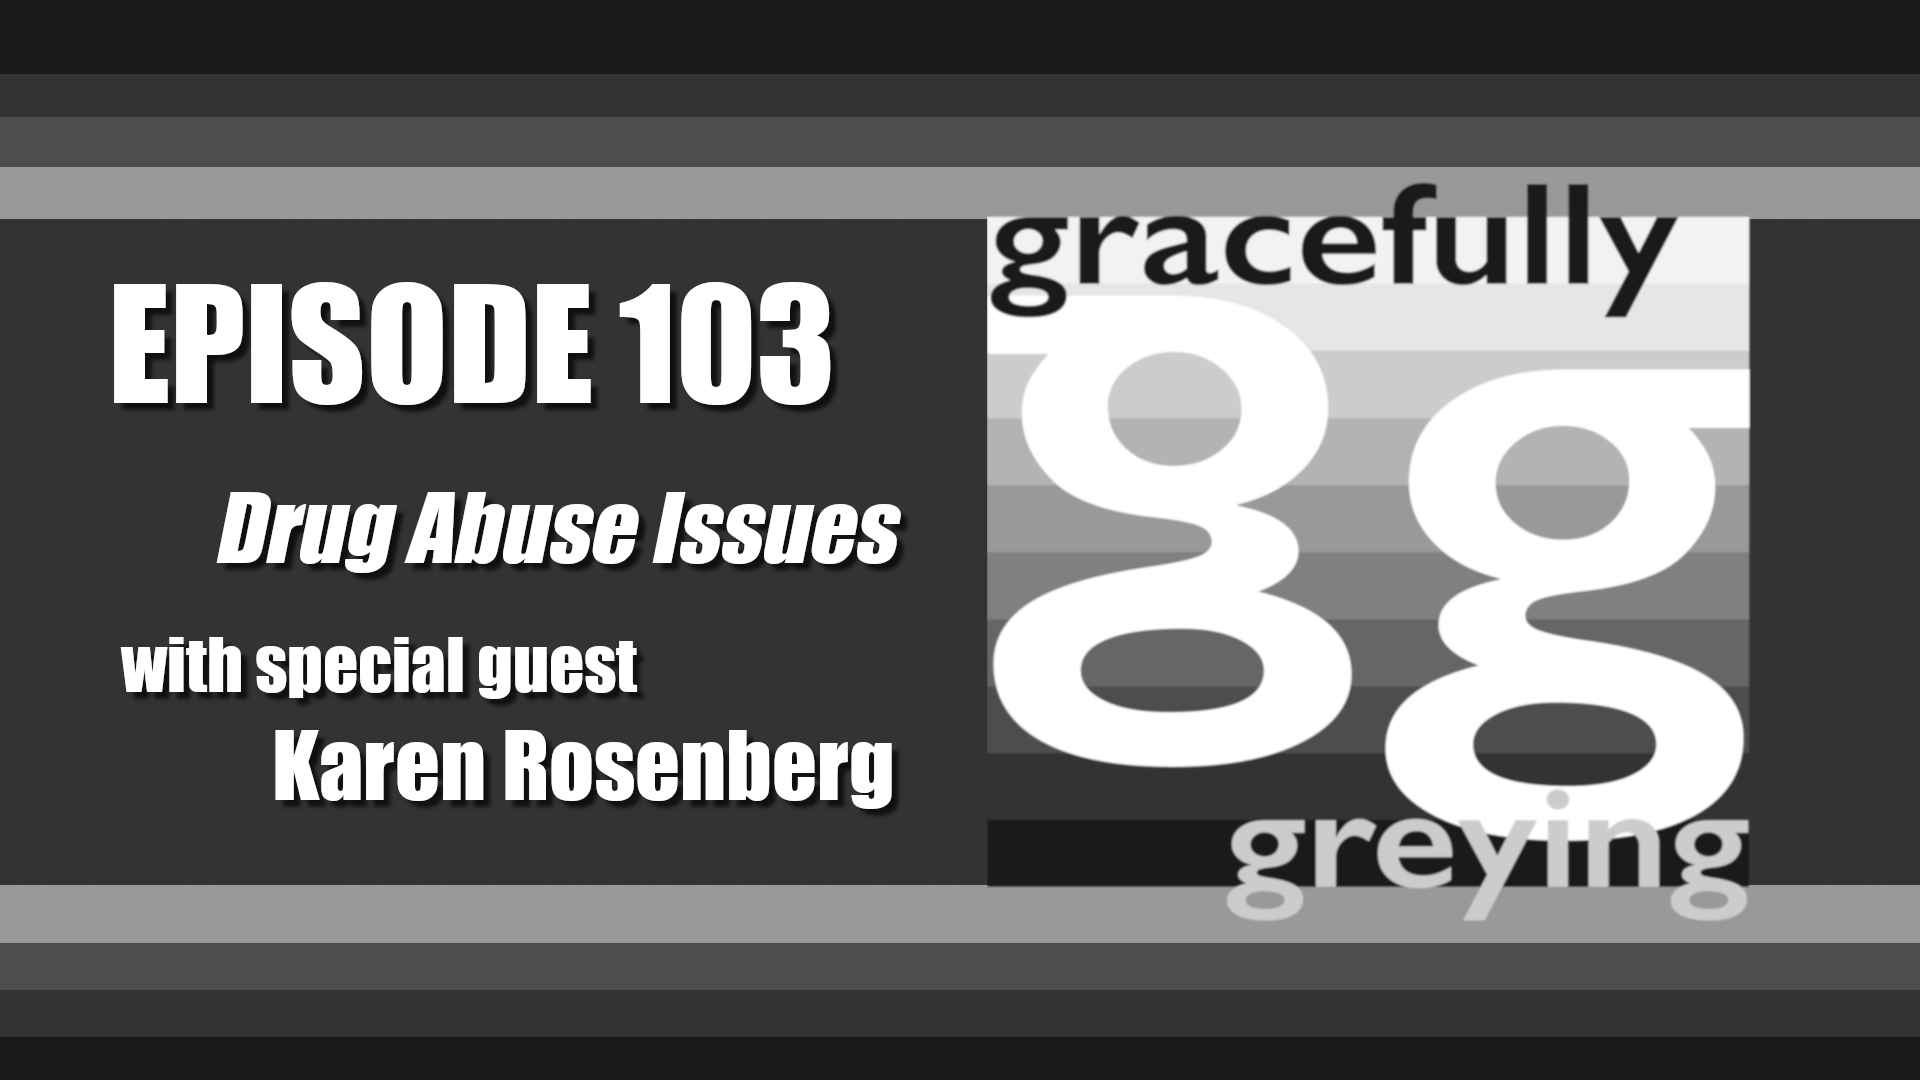 Gracefully Greying - Episode 103 - Drug Abuse Issues